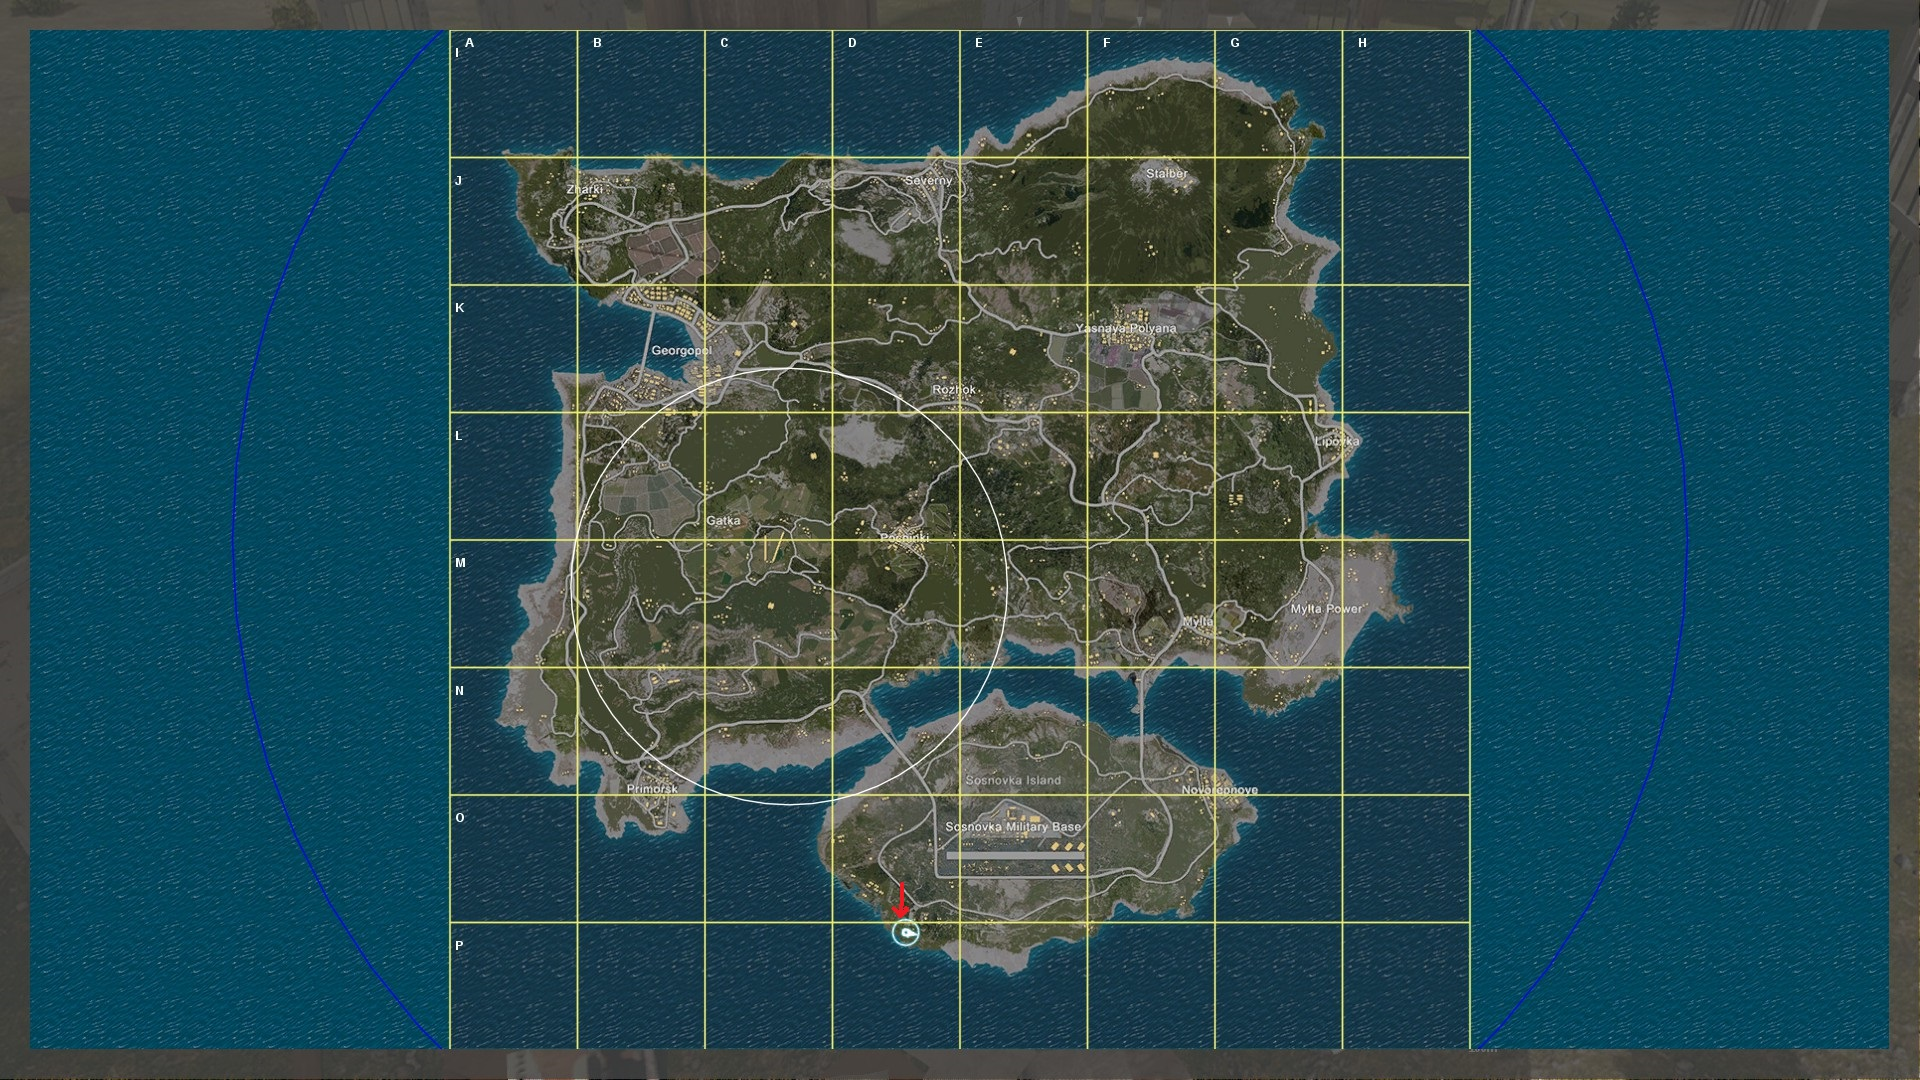 Borderlands 2 Wallpaper Hd Playerunknown S Battlegrounds Maps Amp Loot Maps Pictures